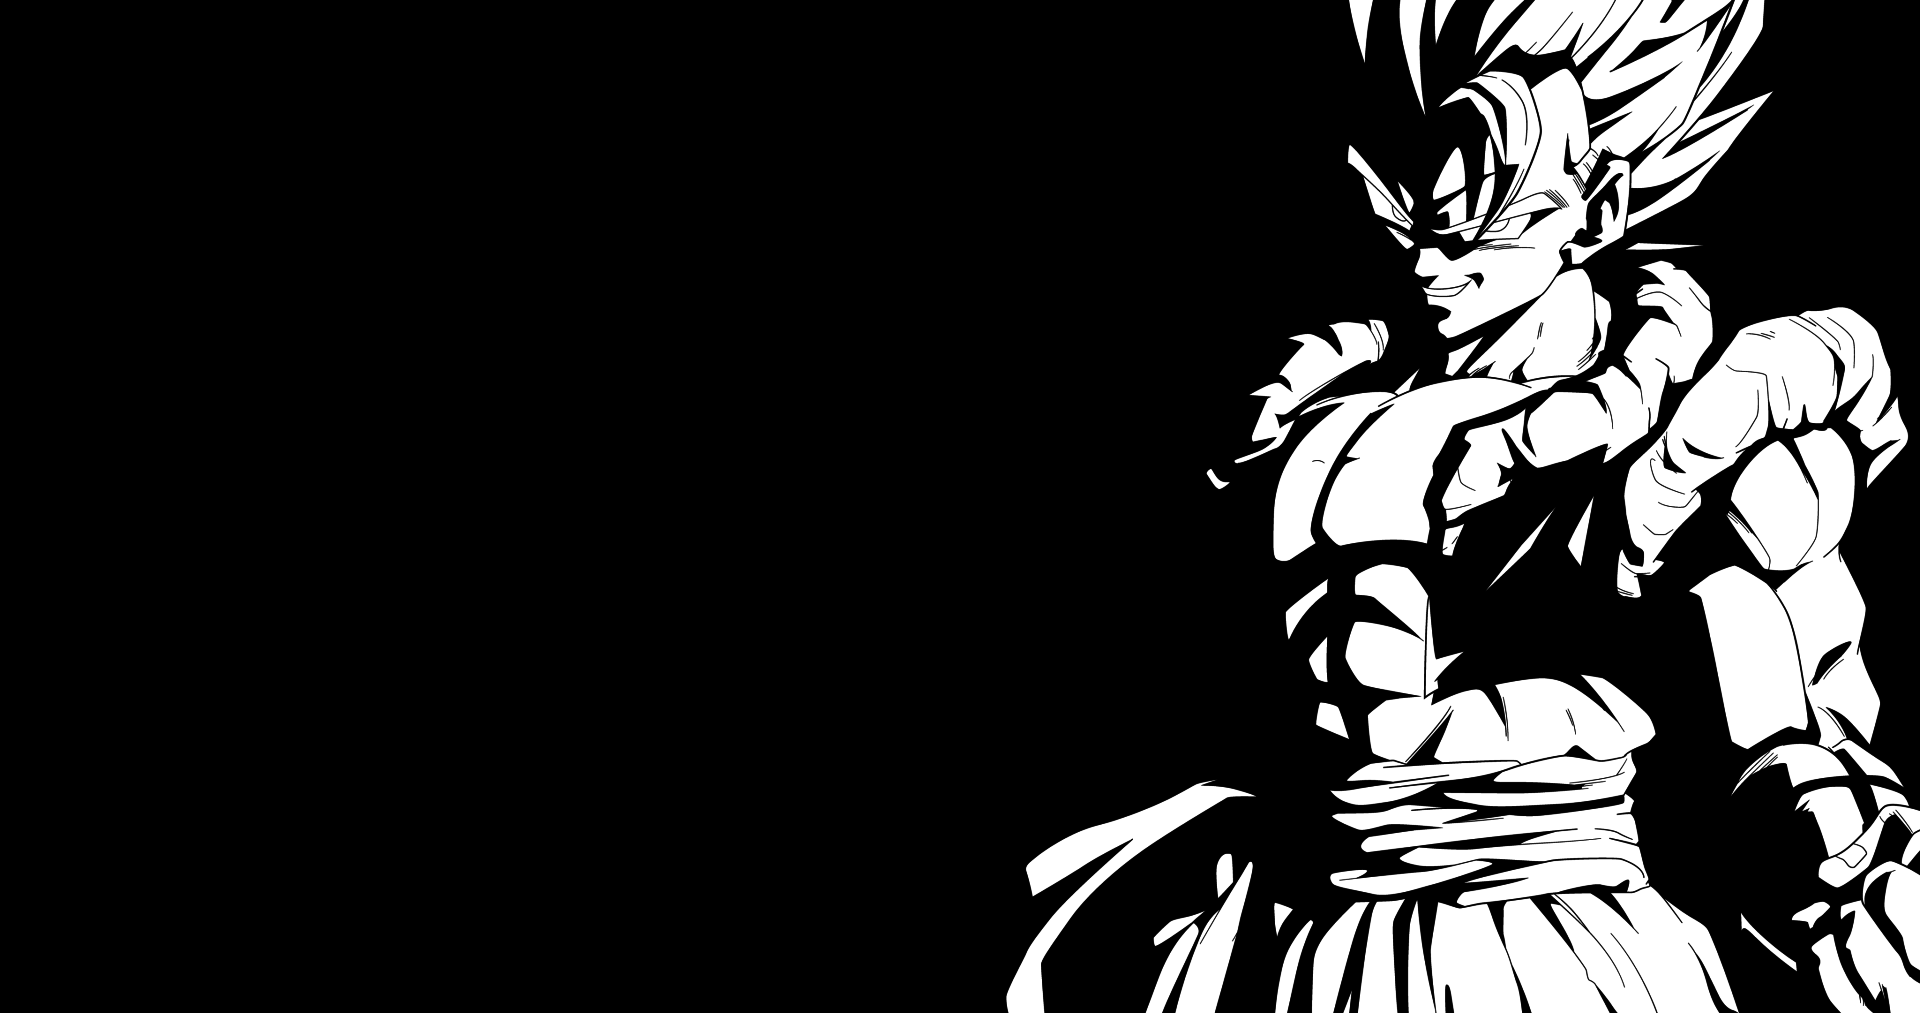 37 4k Ultra Hd Gogeta Dragon Ball Wallpapers Background Images Wallpaper Abyss